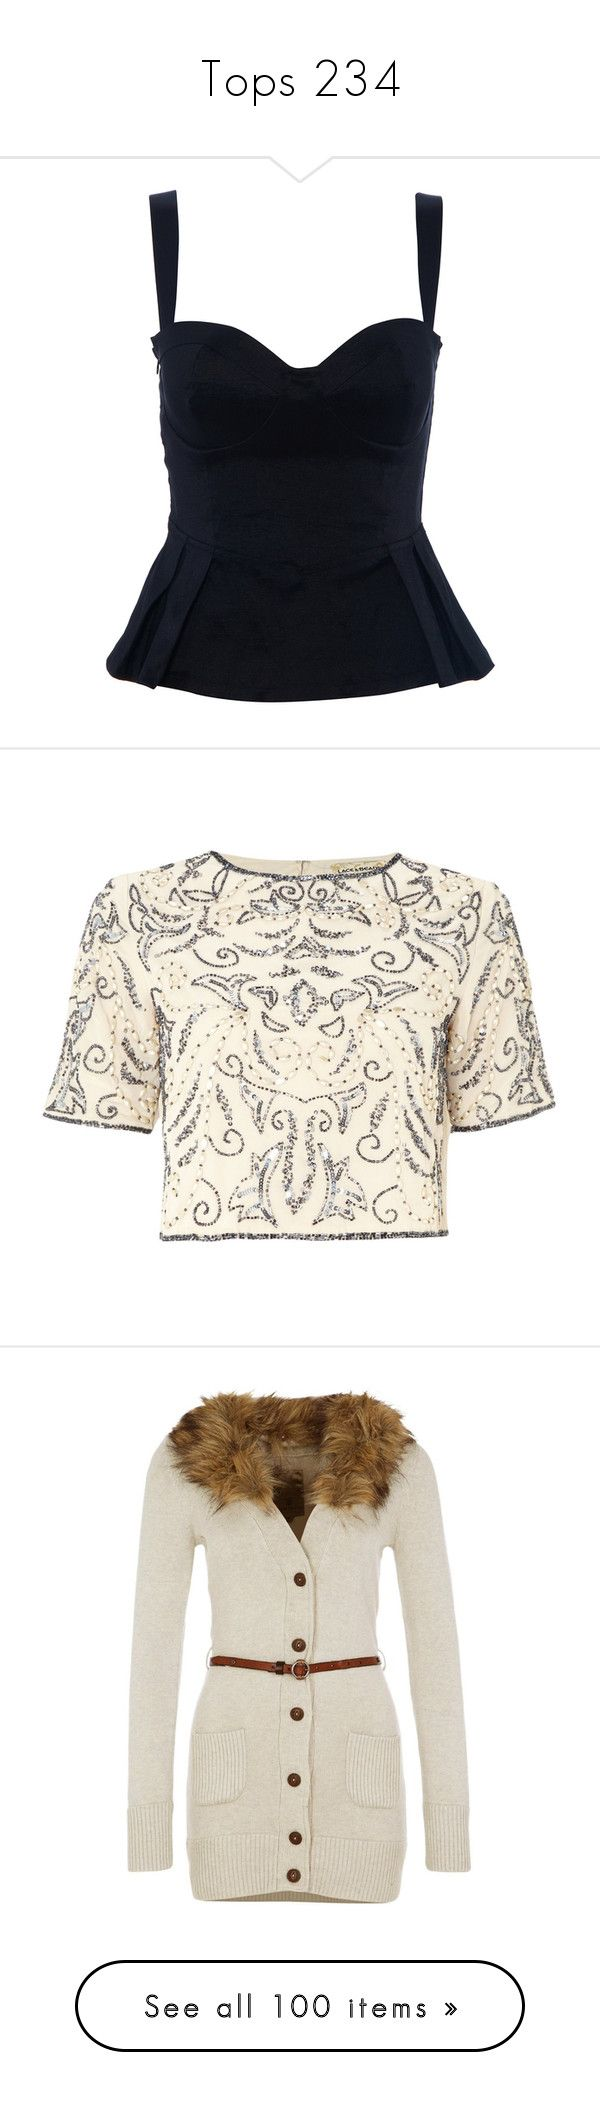 """""""Tops 234"""" by singlemom ❤ liked on Polyvore featuring intimates, camis, tops, ruffle cami, outerwear, jackets, cream, sale, white cropped jacket and cream lace jacket"""